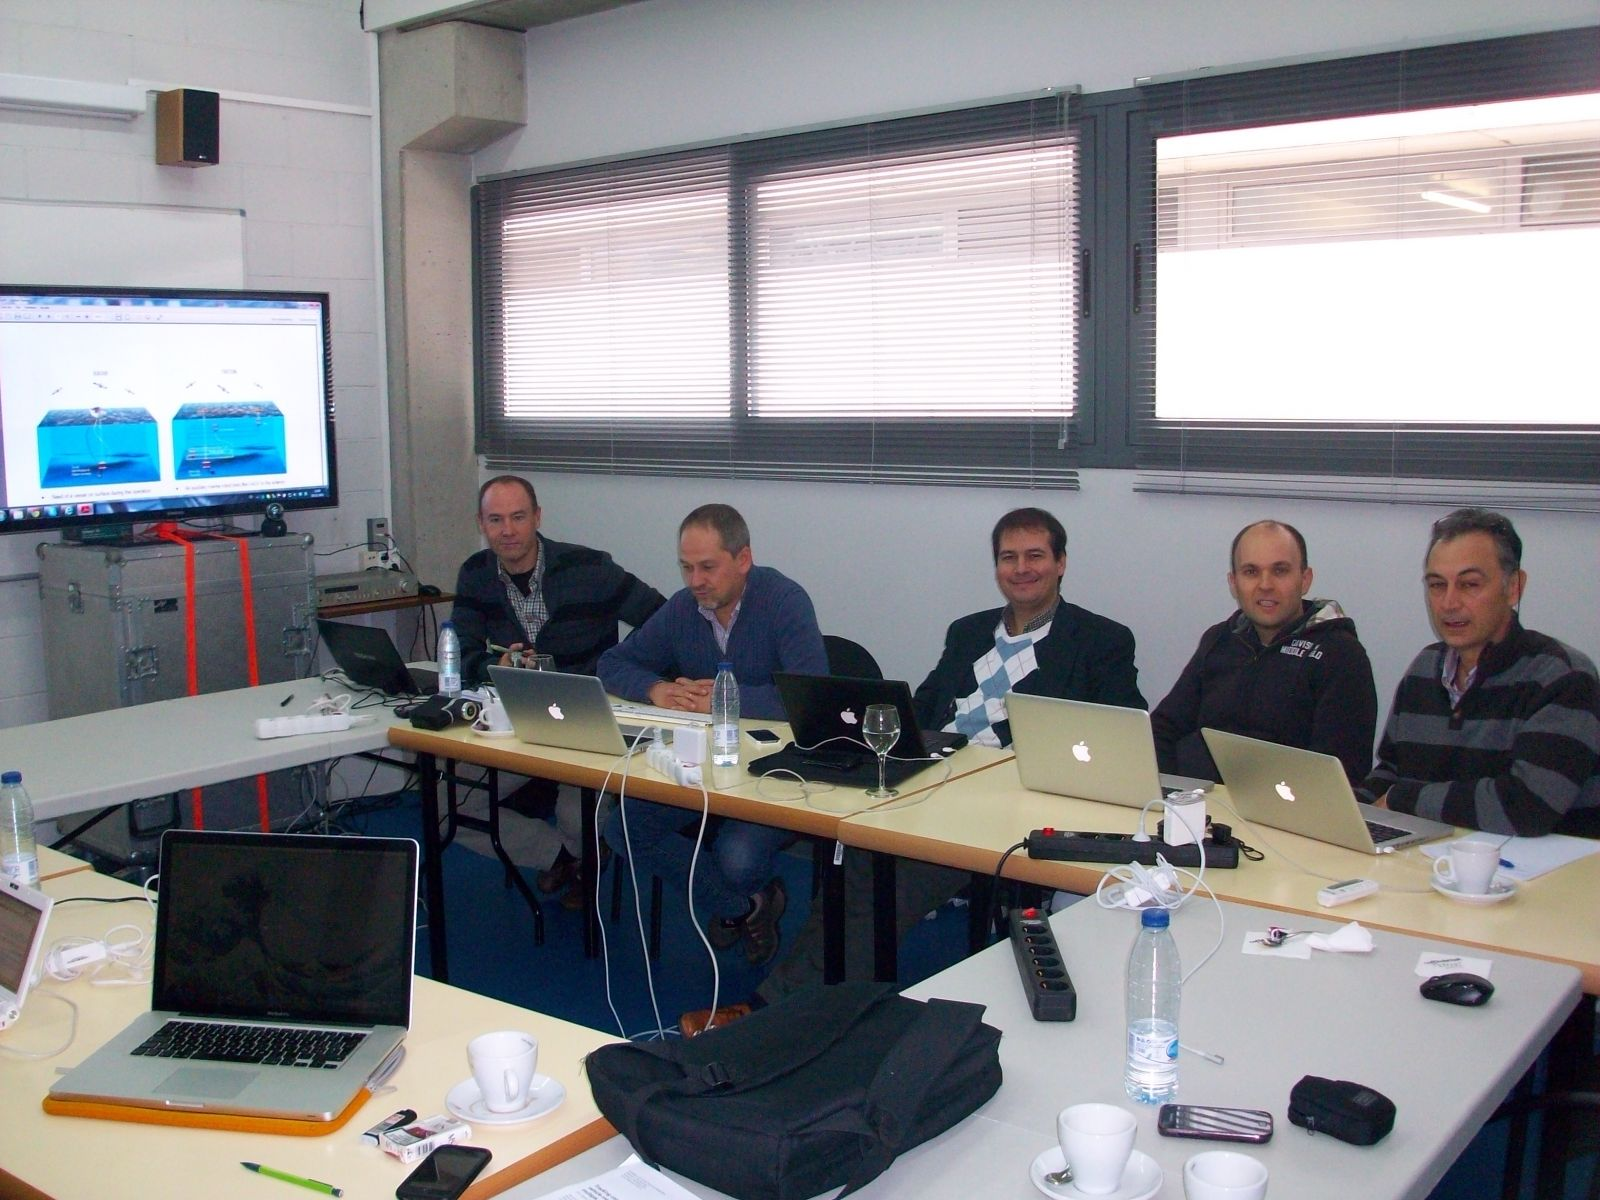 The TRITON consortium during the meeting